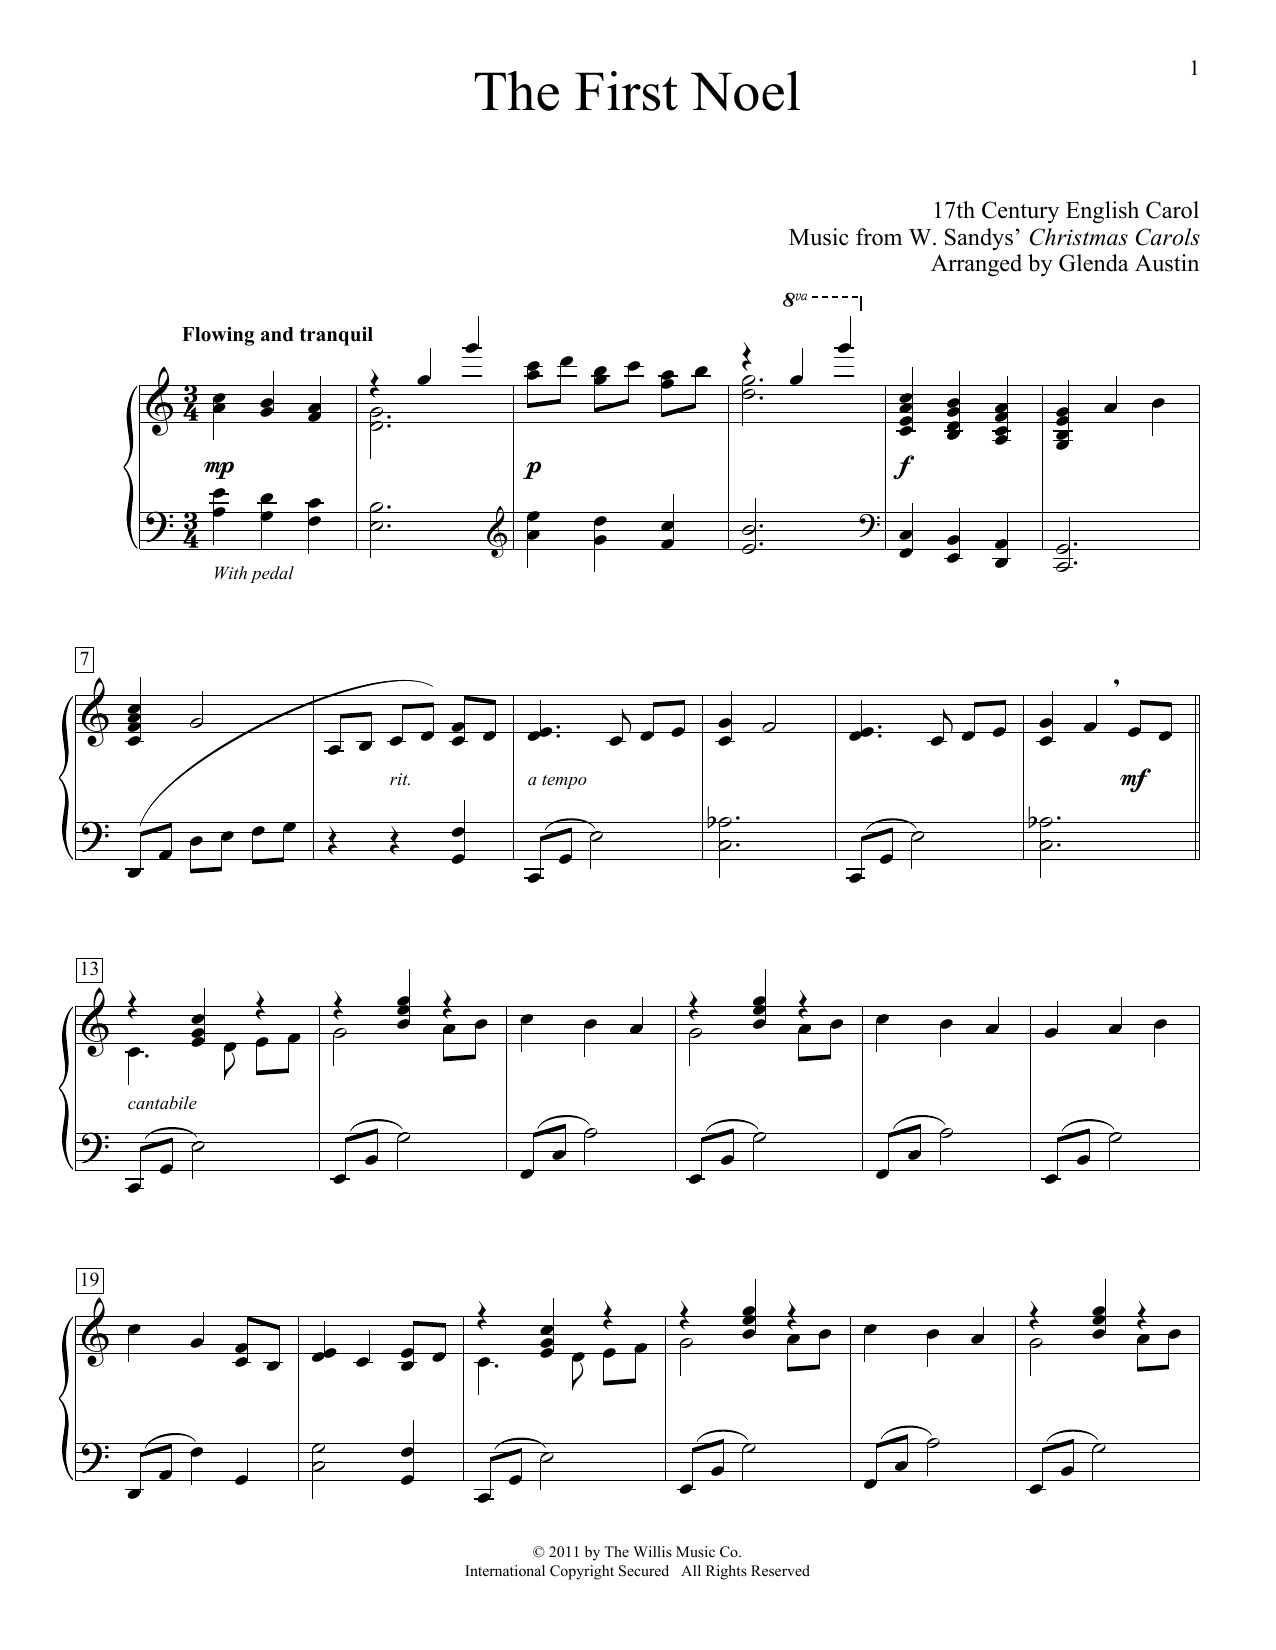 Download 17th Century English Carol 'The First Noel (arr. Glenda Austin)' Digital Sheet Music Notes & Chords and start playing in minutes